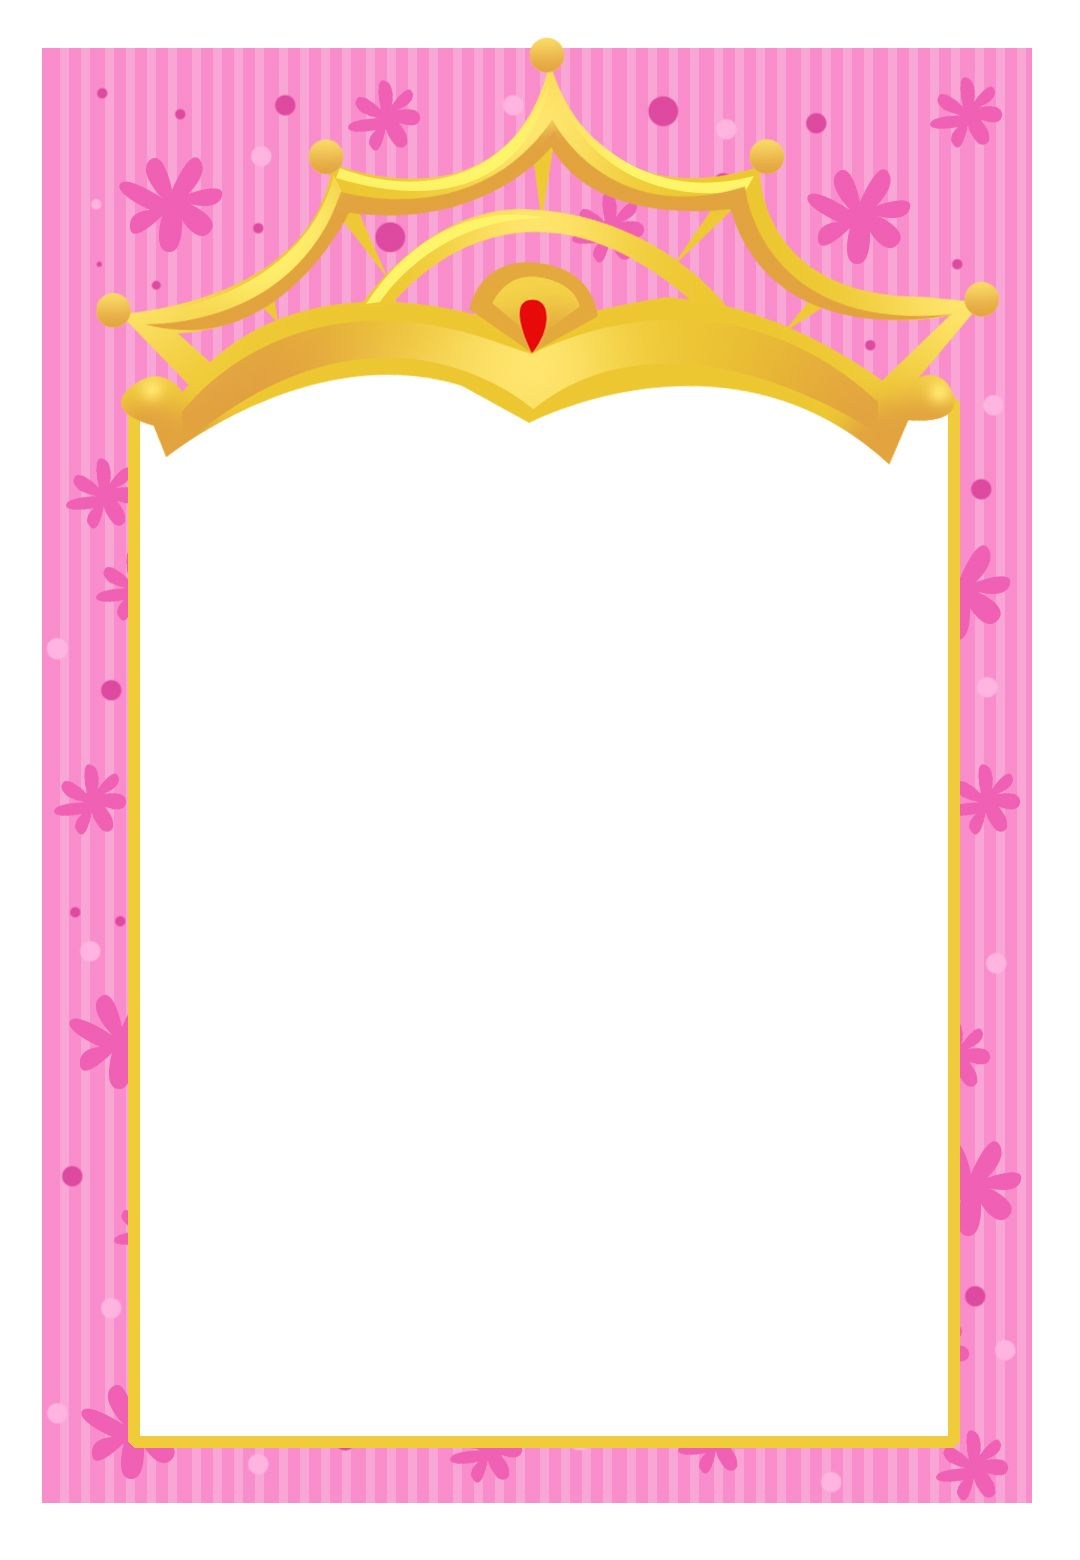 disney princess birthday invitations party ideas printable a little princess invitation another template and you chose the text and can